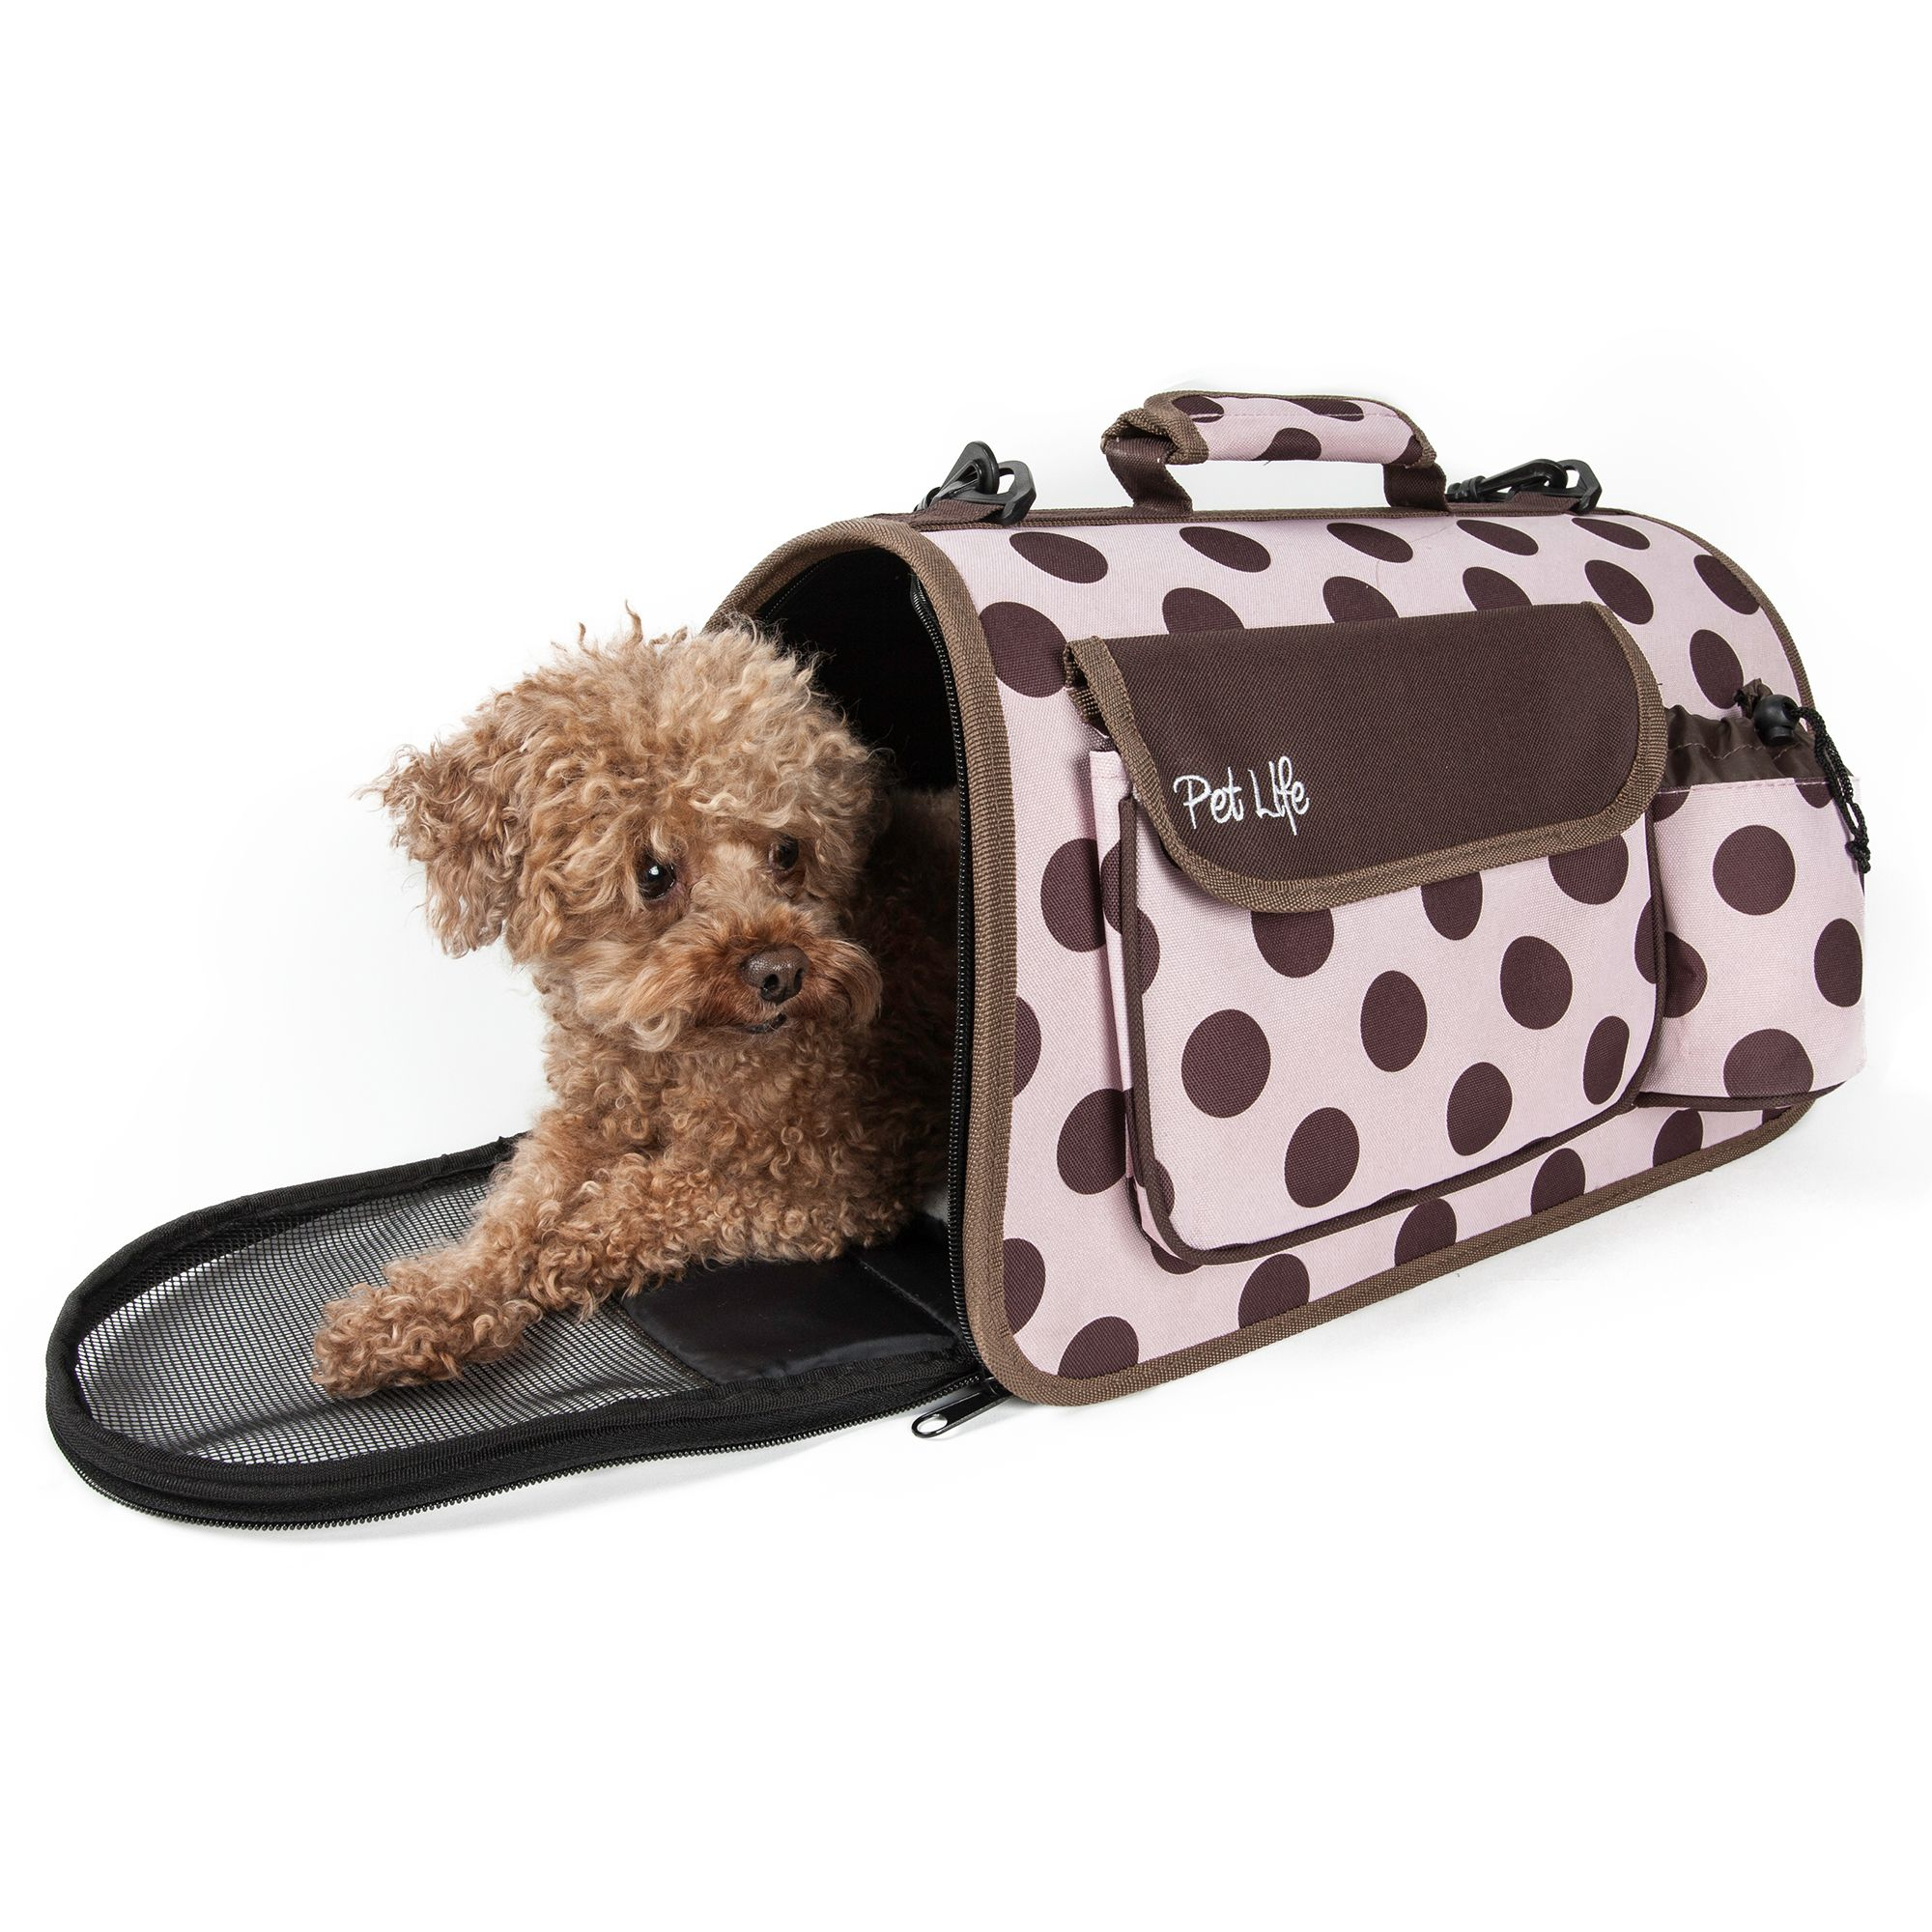 Pet Life Airline Approved Casual Pet Carrier Size 18.1l X 10.1w X 10.5h Pink Brown